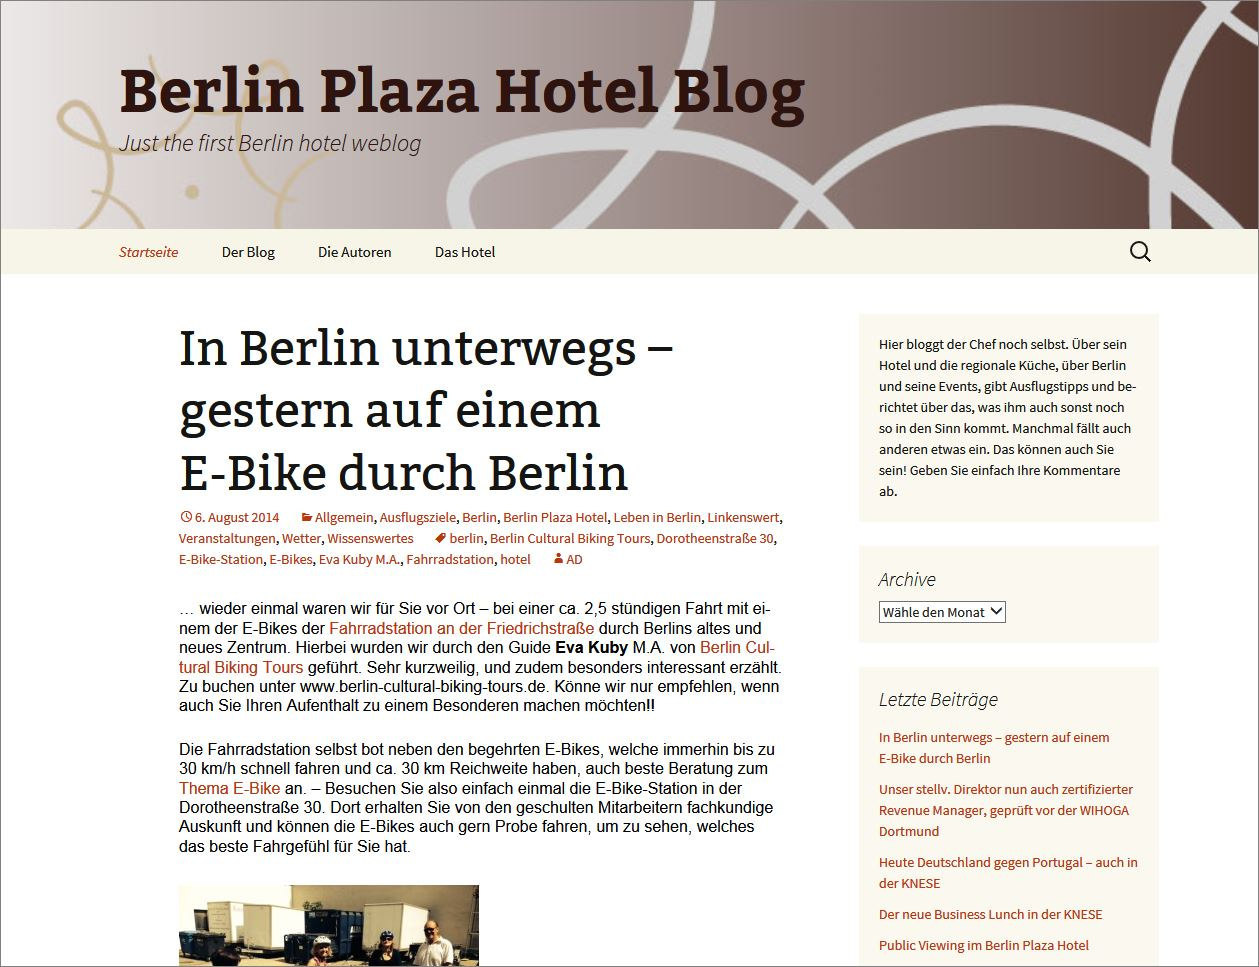 Berlin Plaza Hotel Blog